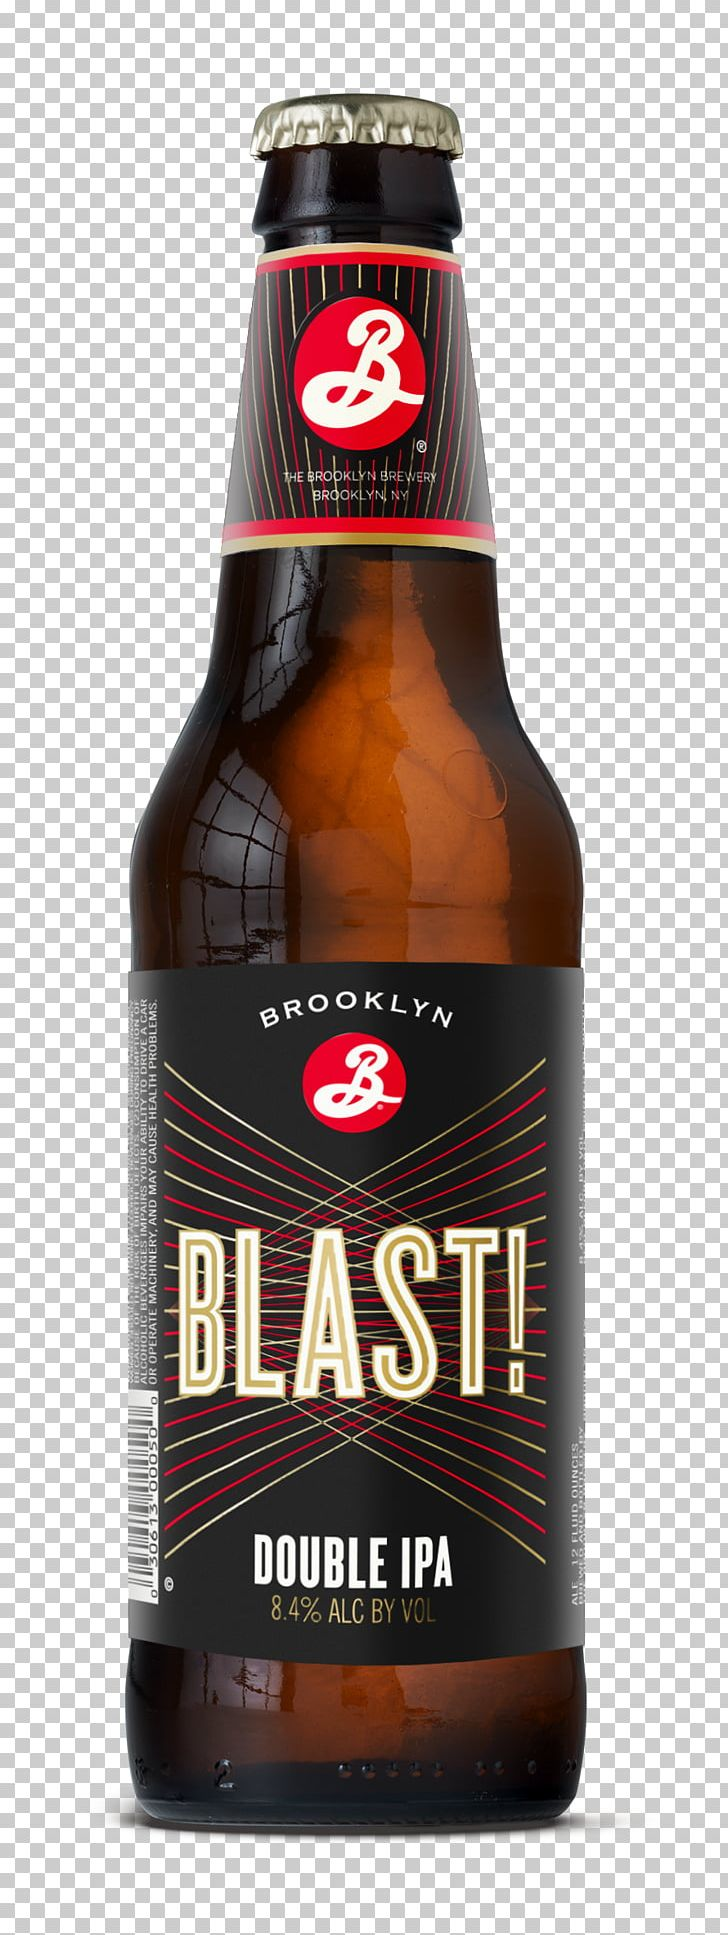 Brooklyn Brewery Beer India Pale Ale PNG, Clipart, Alcoholic Drink, Ale, Beer, Beer Bottle, Bottle Free PNG Download